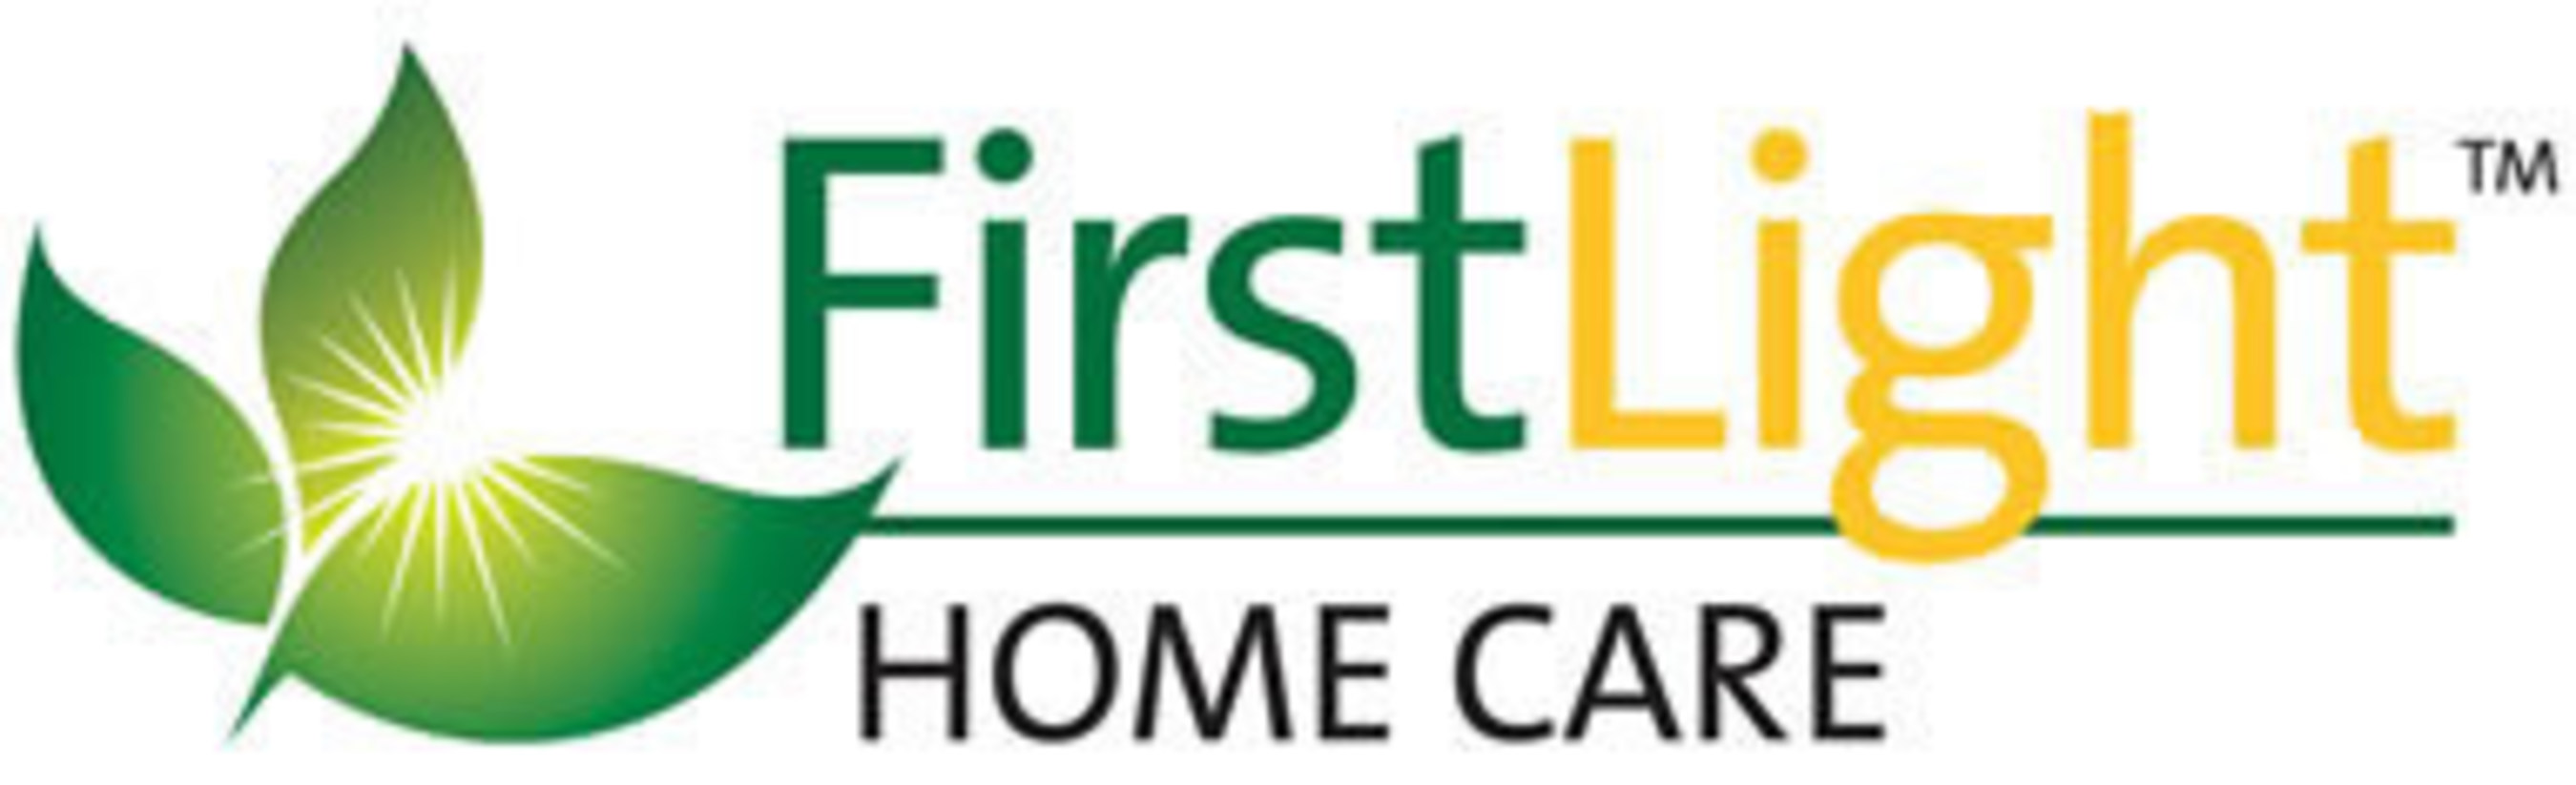 FirstLight HomeCare Named Top Franchise Choice for Veterans